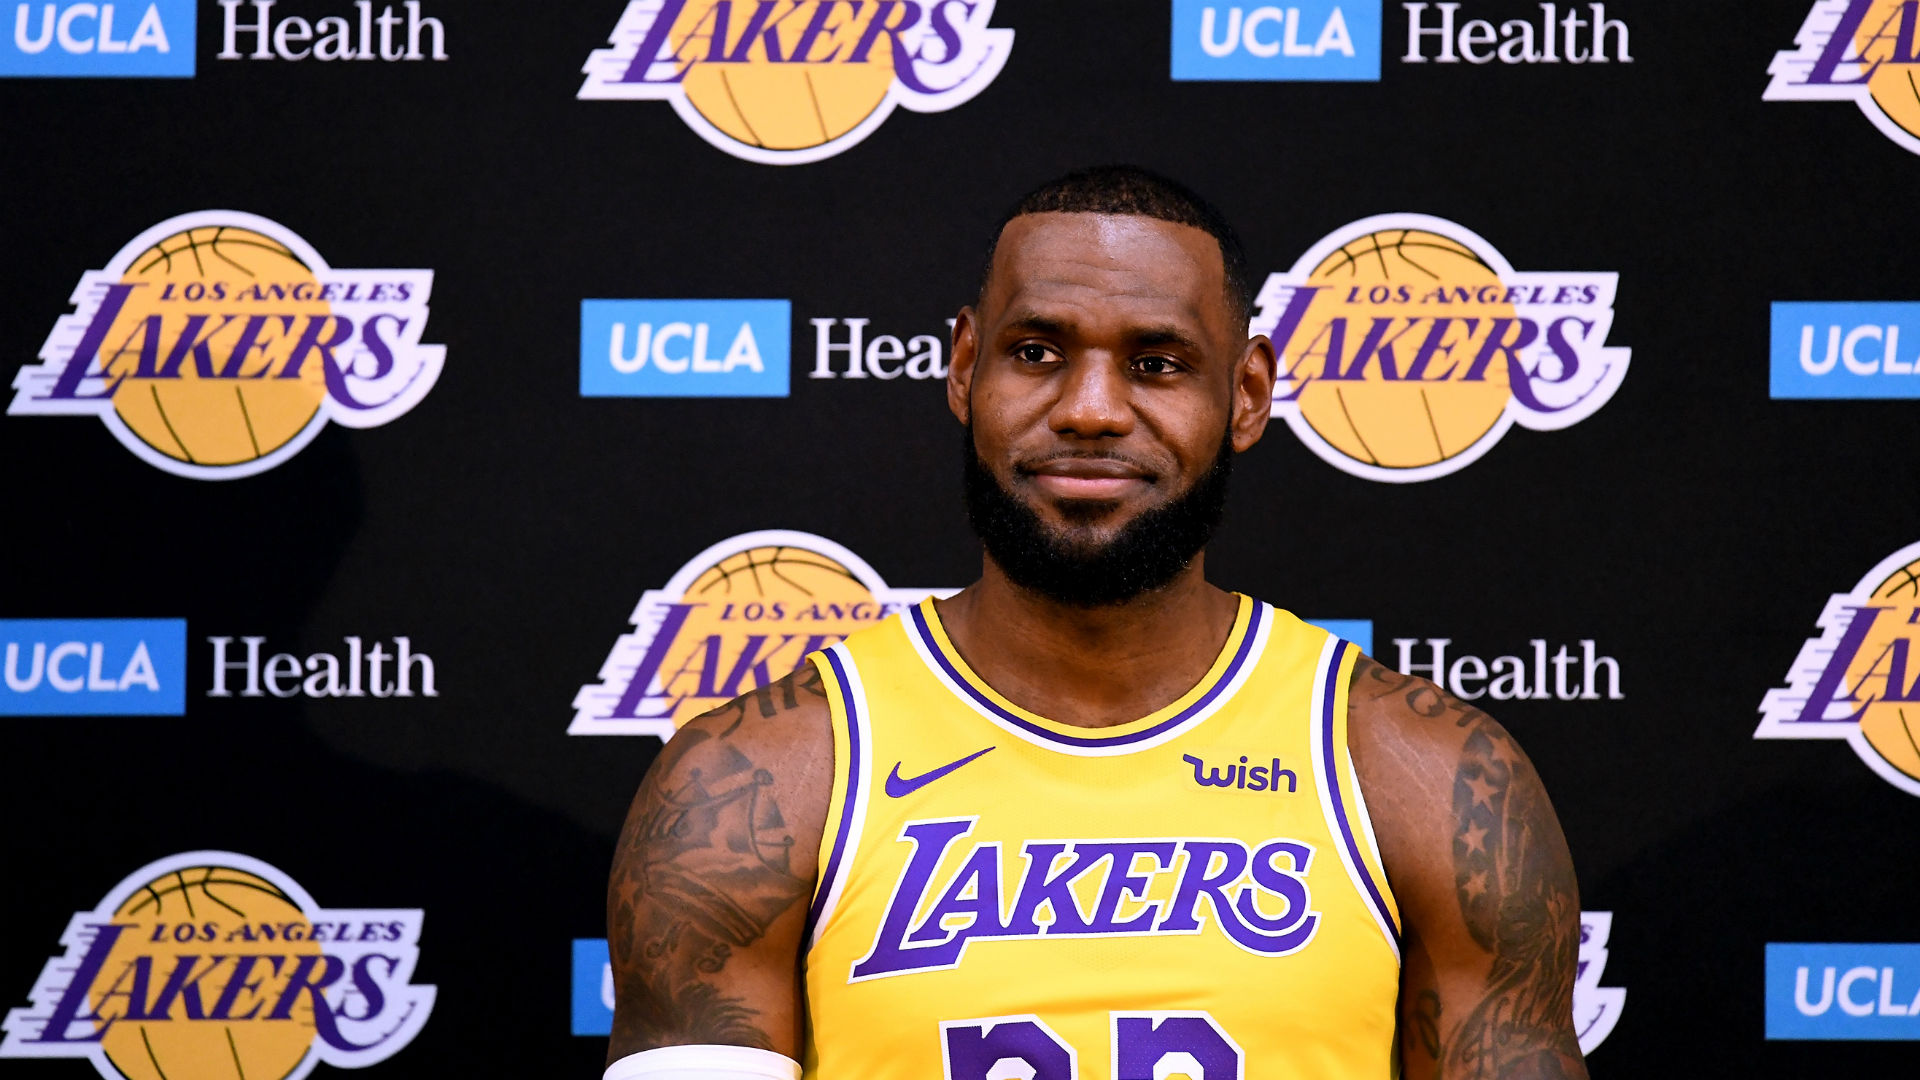 e071e1a55d63 Lakers formally introduce LeBron James at media day